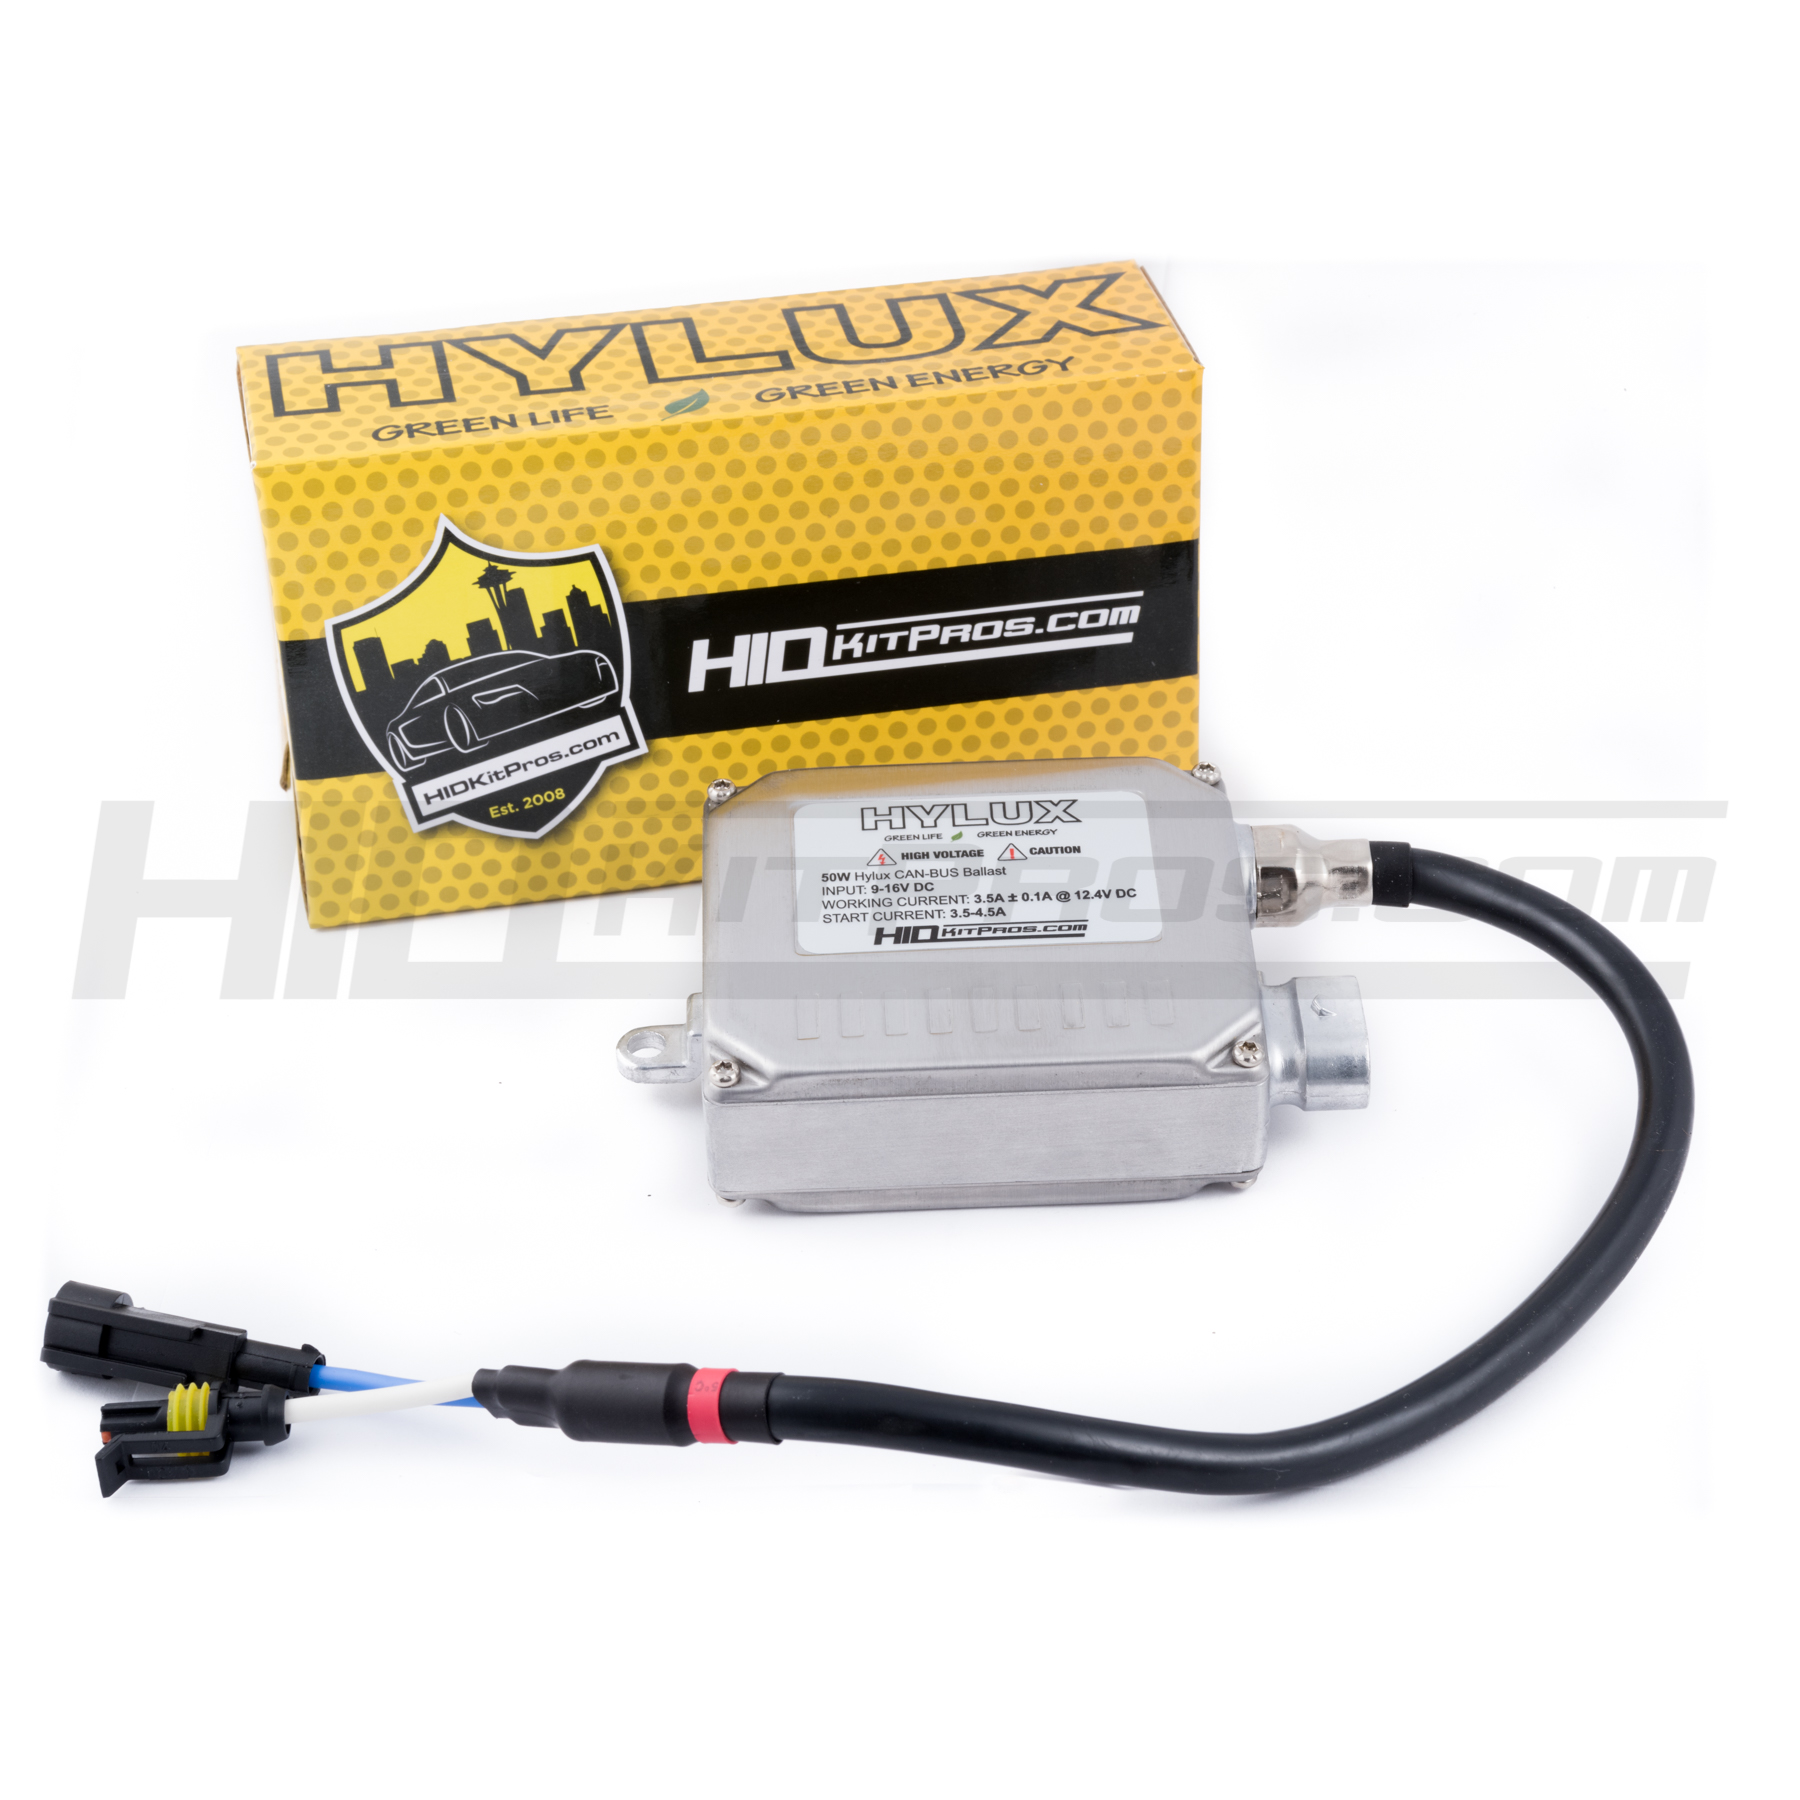 HYLUX HID CAN-Bus Ballast - 50W | 2A50 | HID Kit Pros